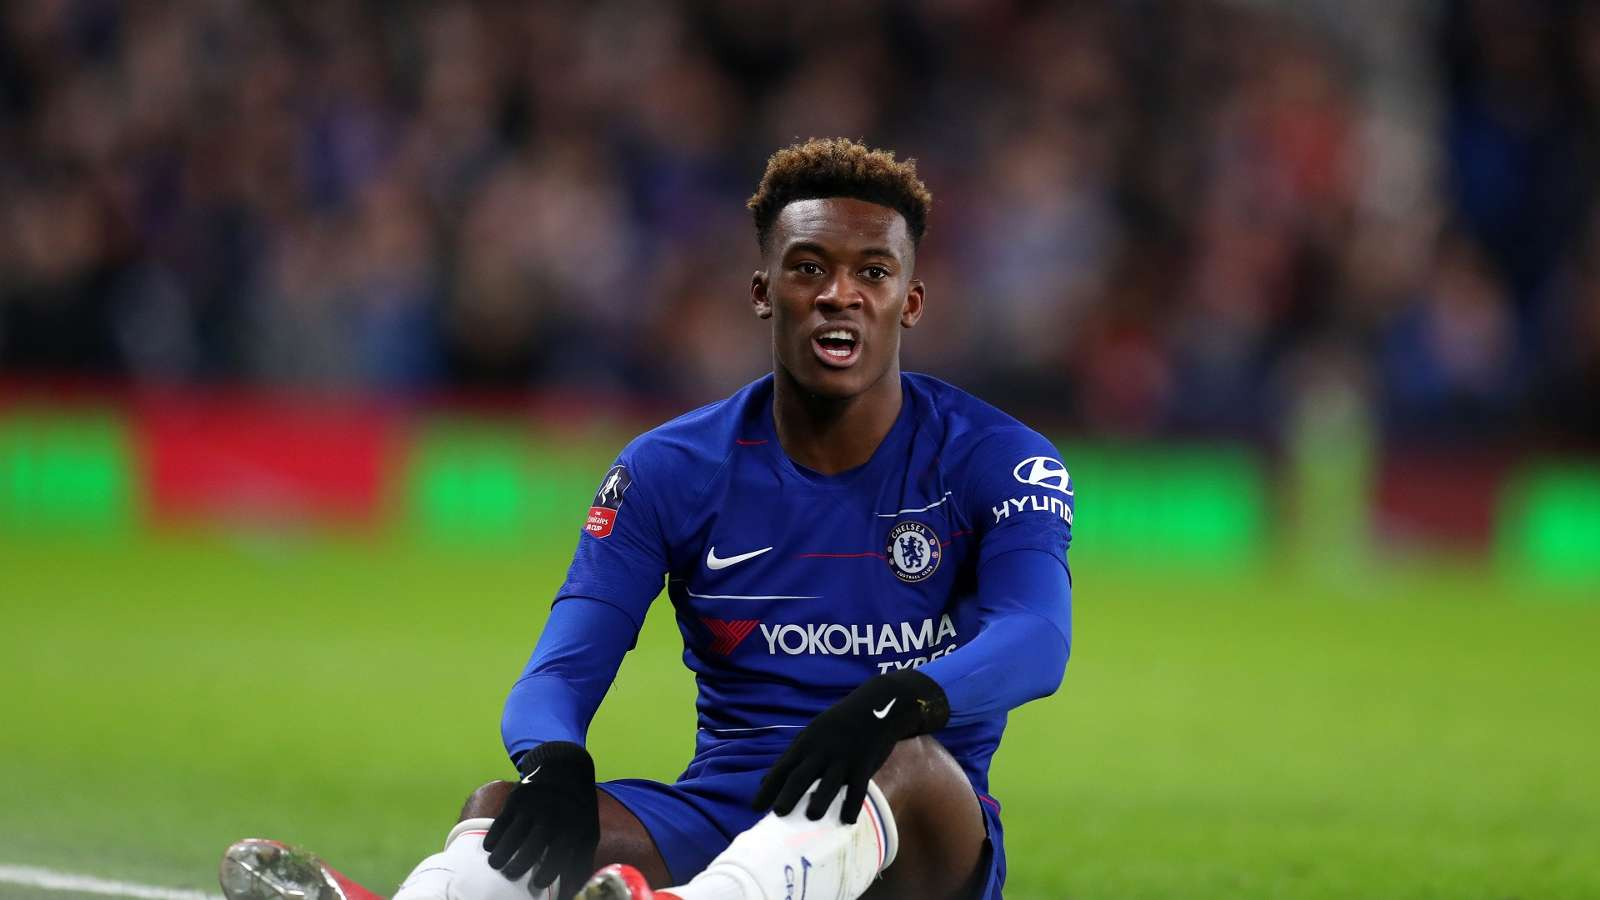 Chelsea manager hints Hudson-Odoi contract talks again stalling